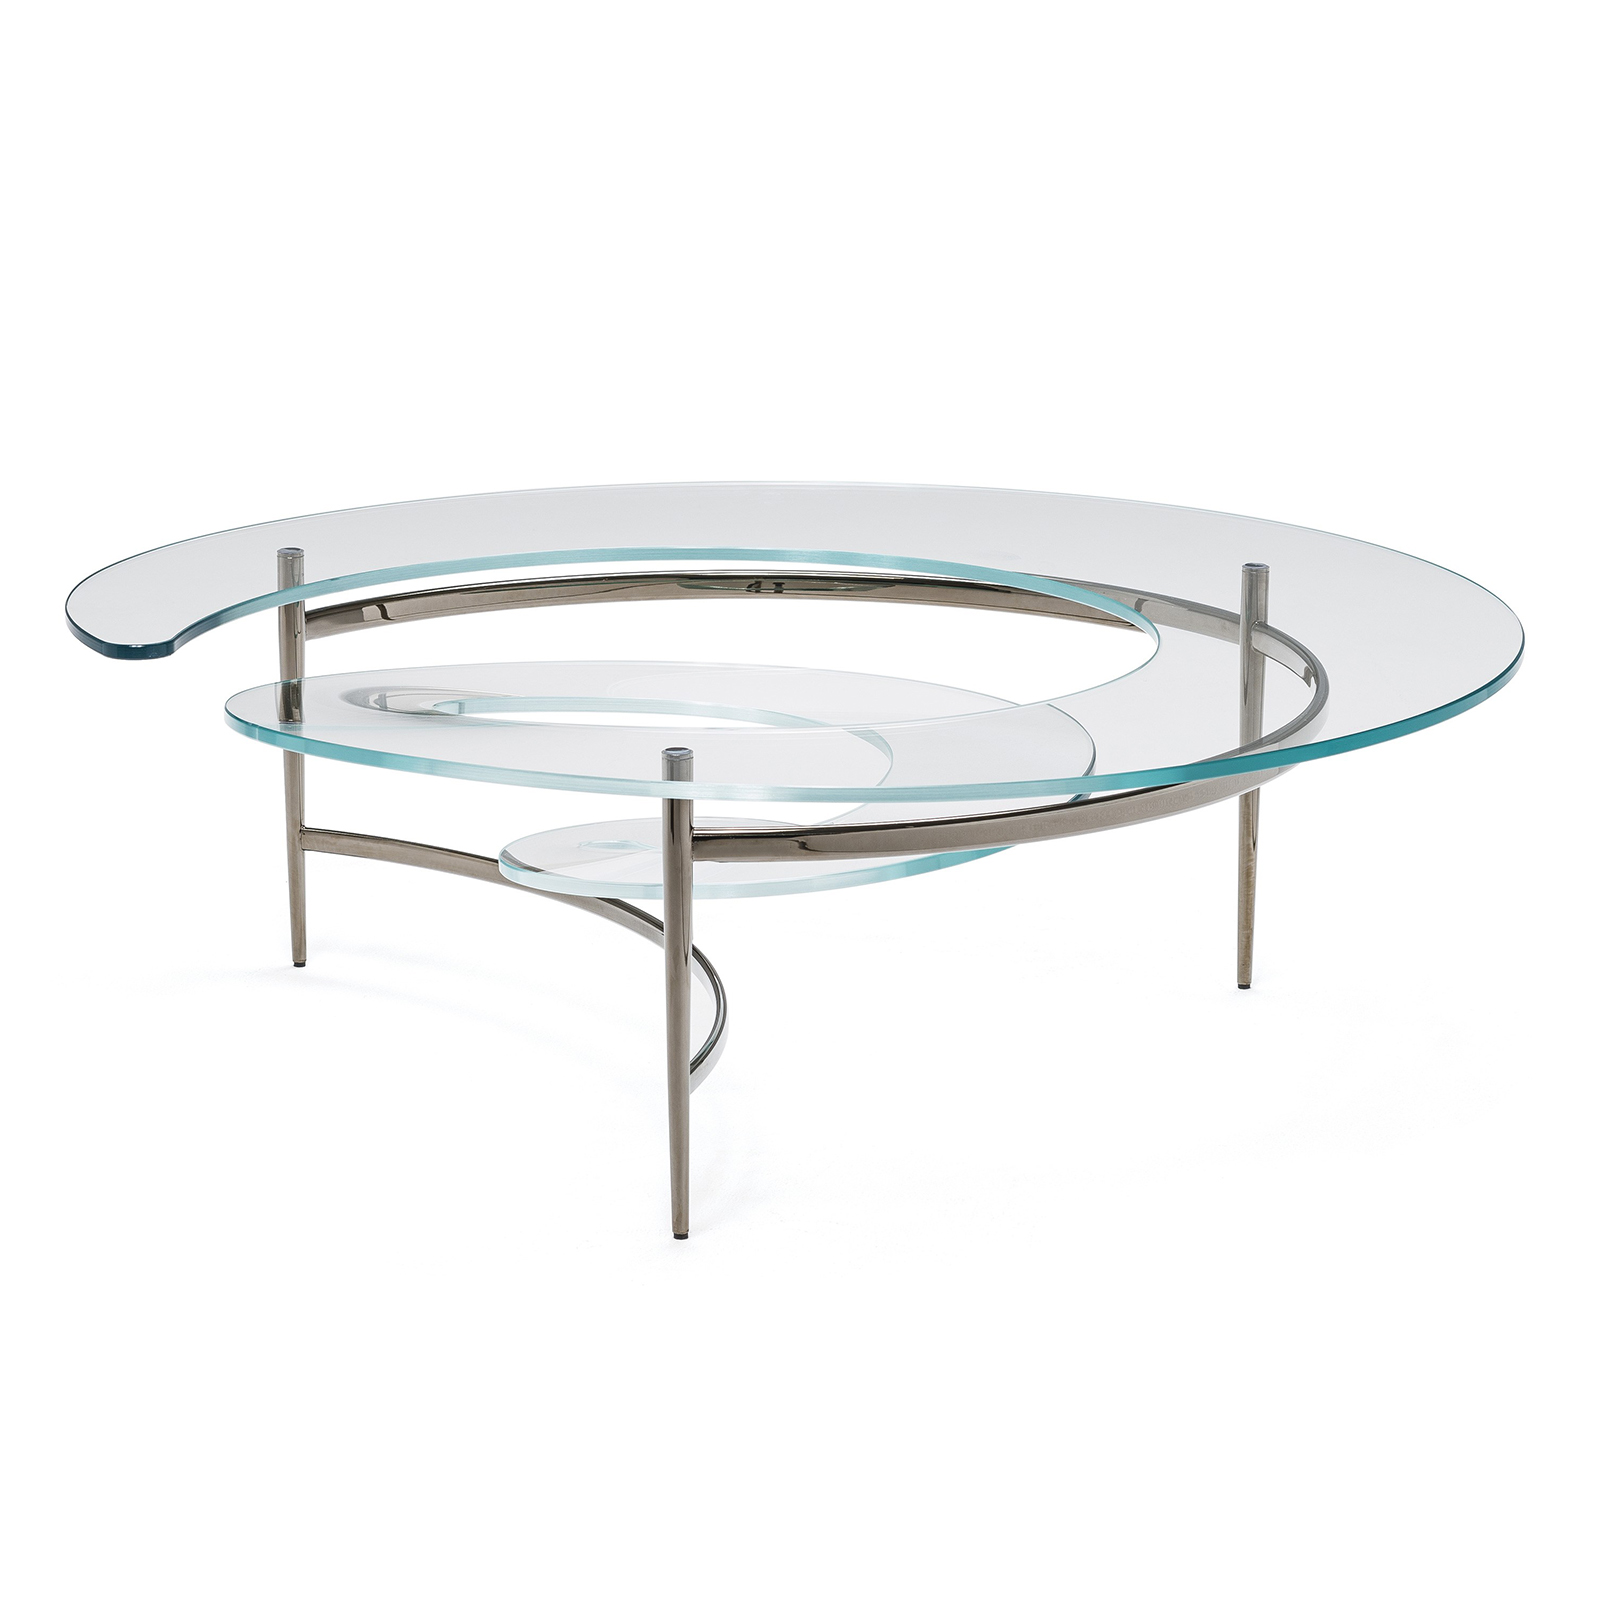 Table basse design en verre spirale mobilier de luxe for Table basse verre but